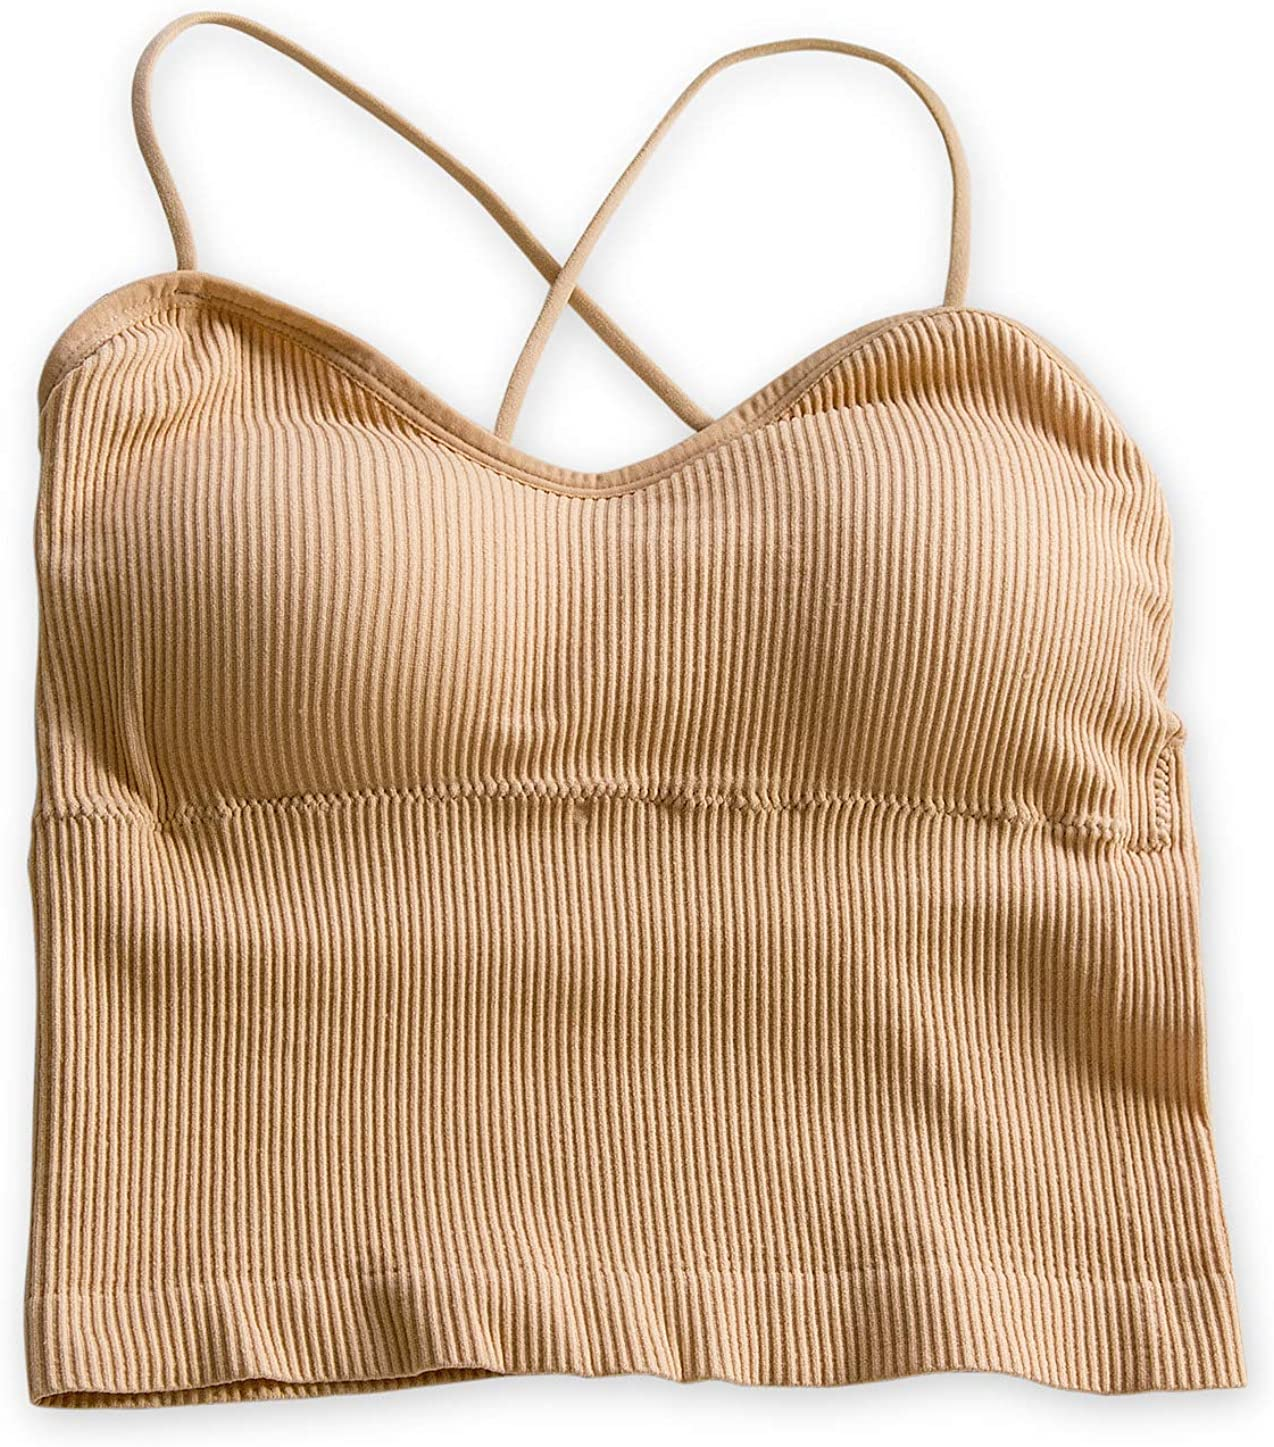 TOCONFFON Women's Slim-Fit Spaghetti Strap Camisole Padded Ribbed Crop Cami Tank Top